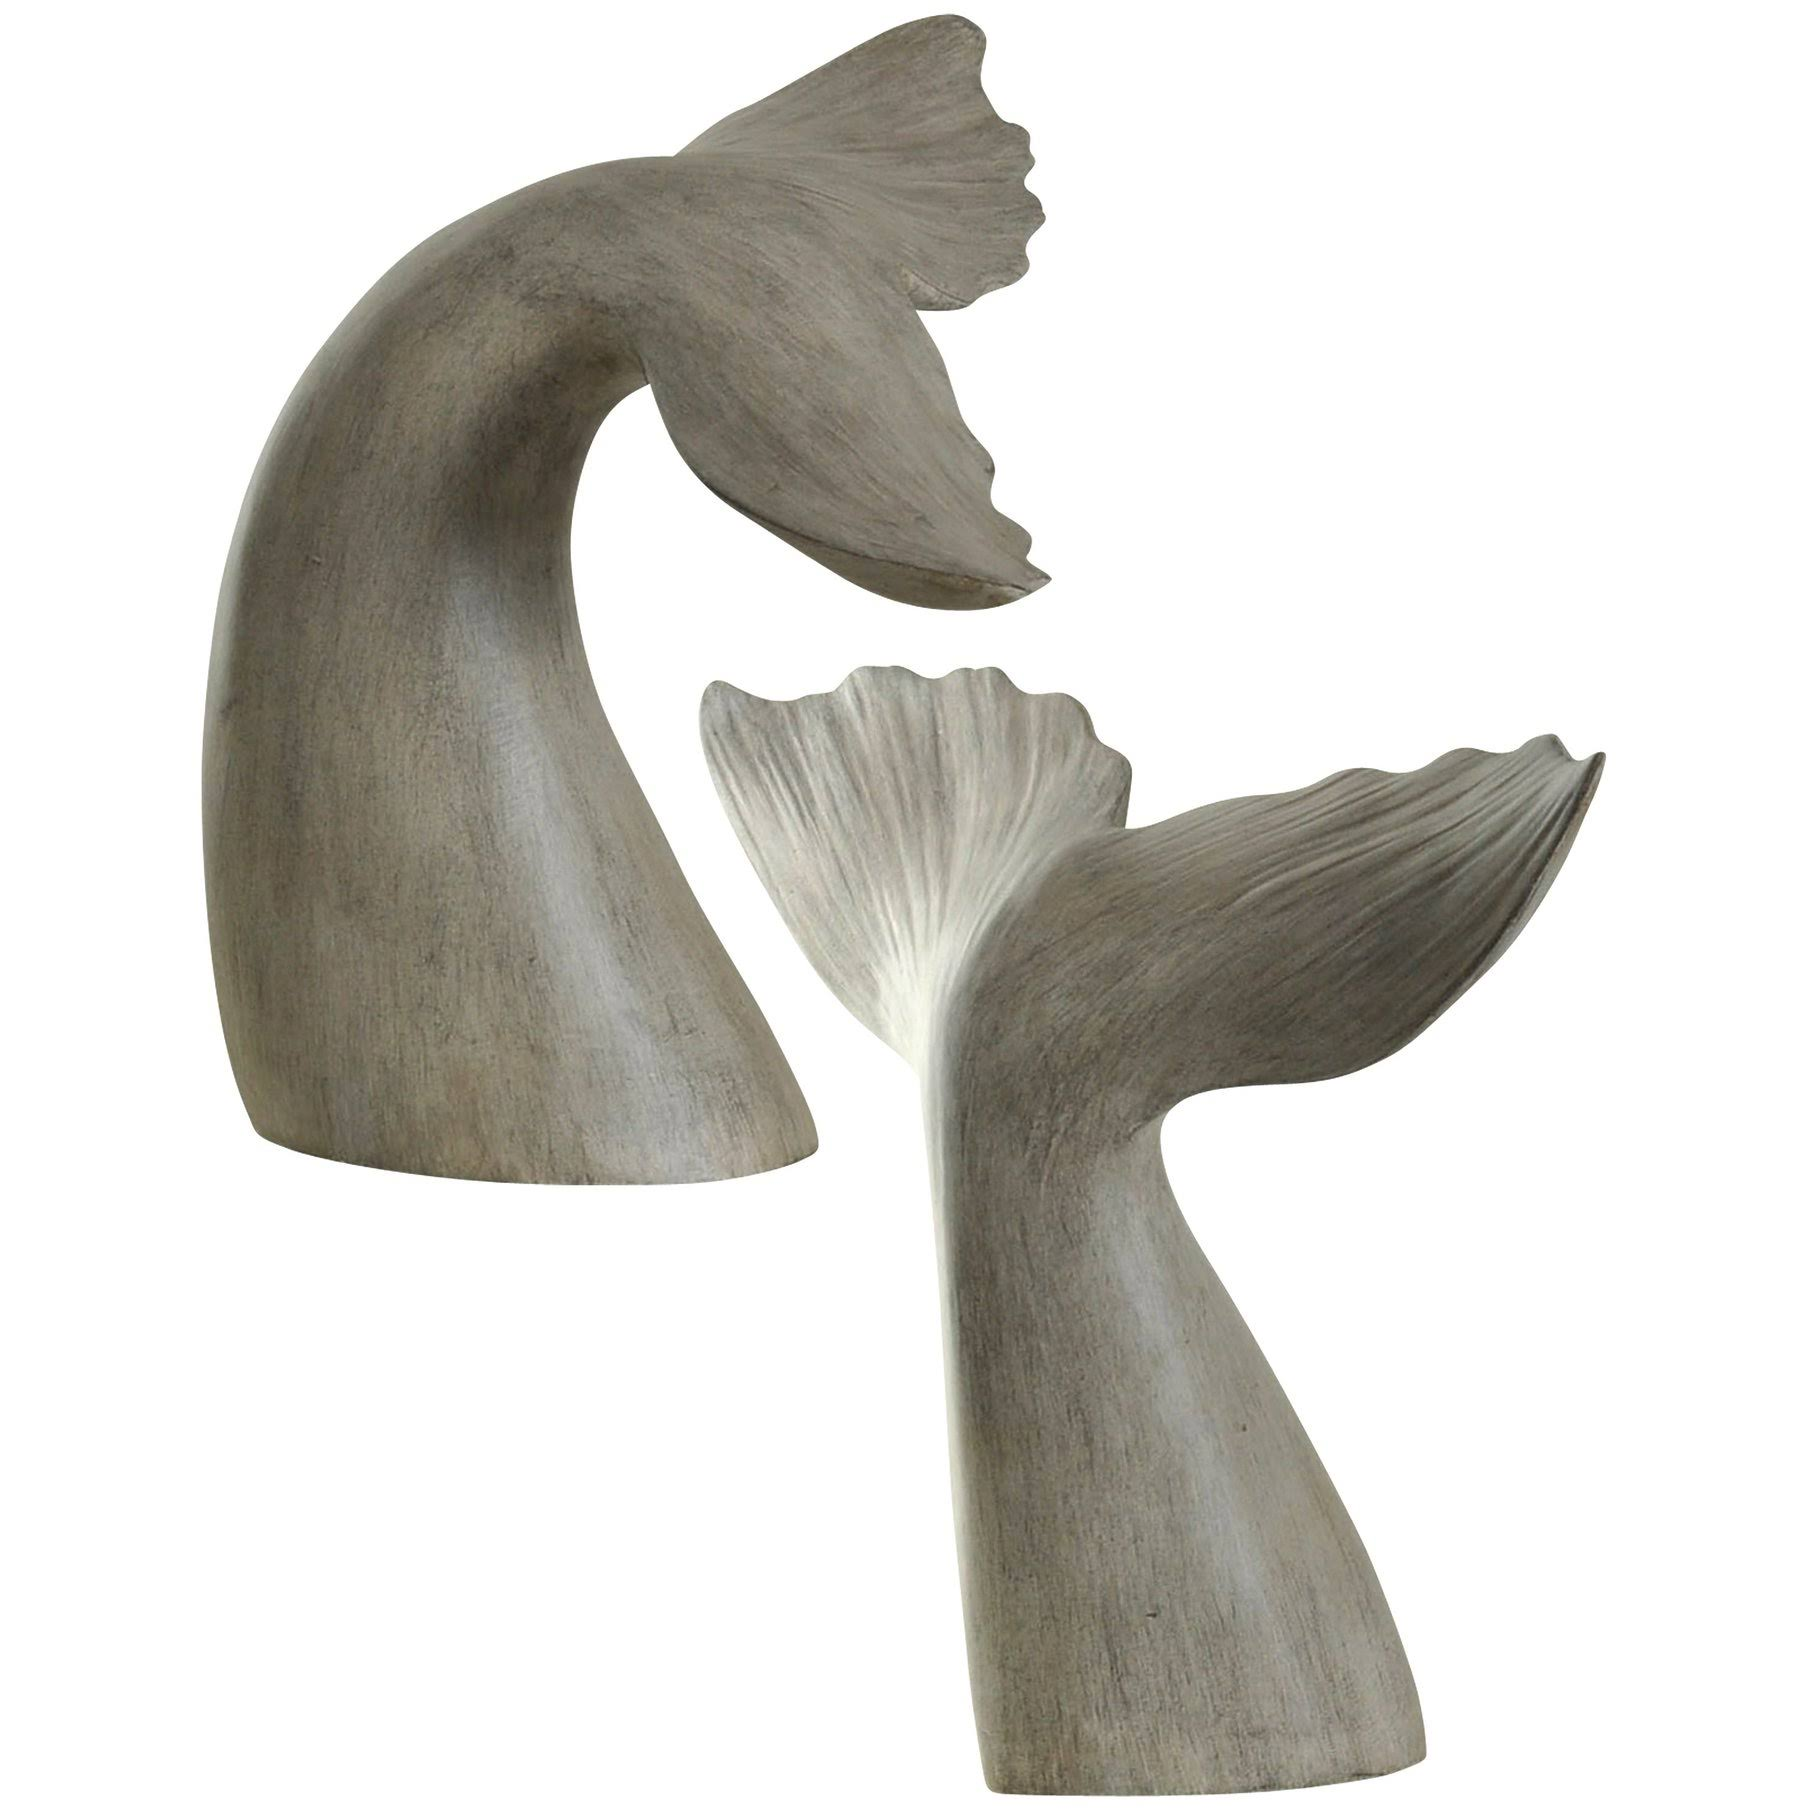 Gwg Outlet Set of 2 Gray Whale Tail Book End in Melville Finish